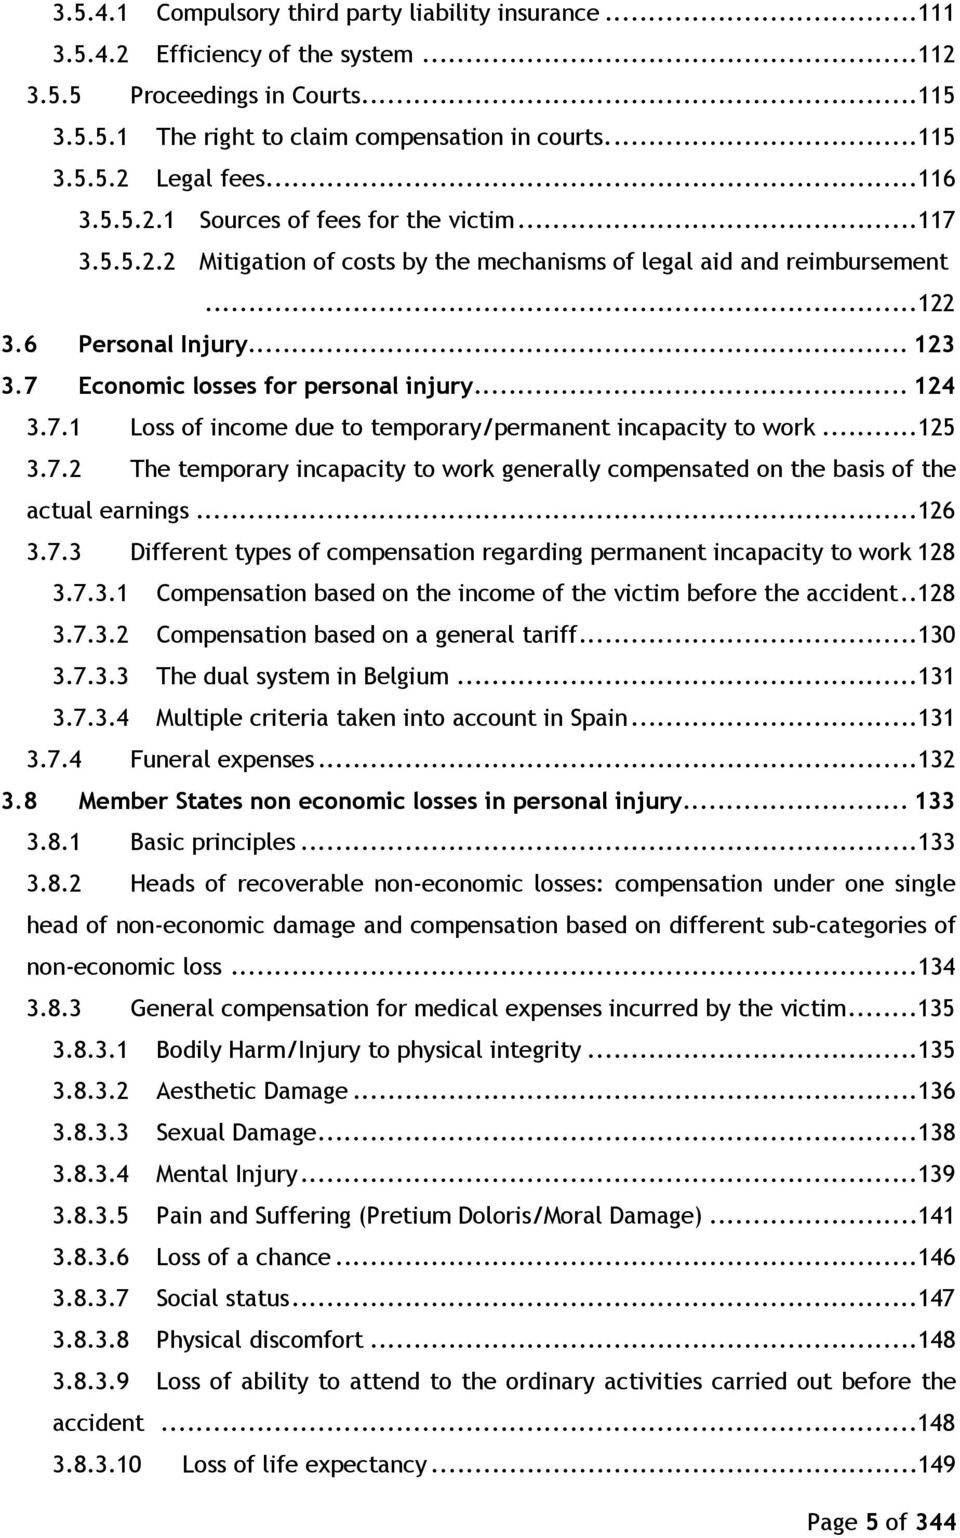 7 Economic losses for personal injury... 124 3.7.1 Loss of income due to temporary/permanent incapacity to work...125 3.7.2 The temporary incapacity to work generally compensated on the basis of the actual earnings.